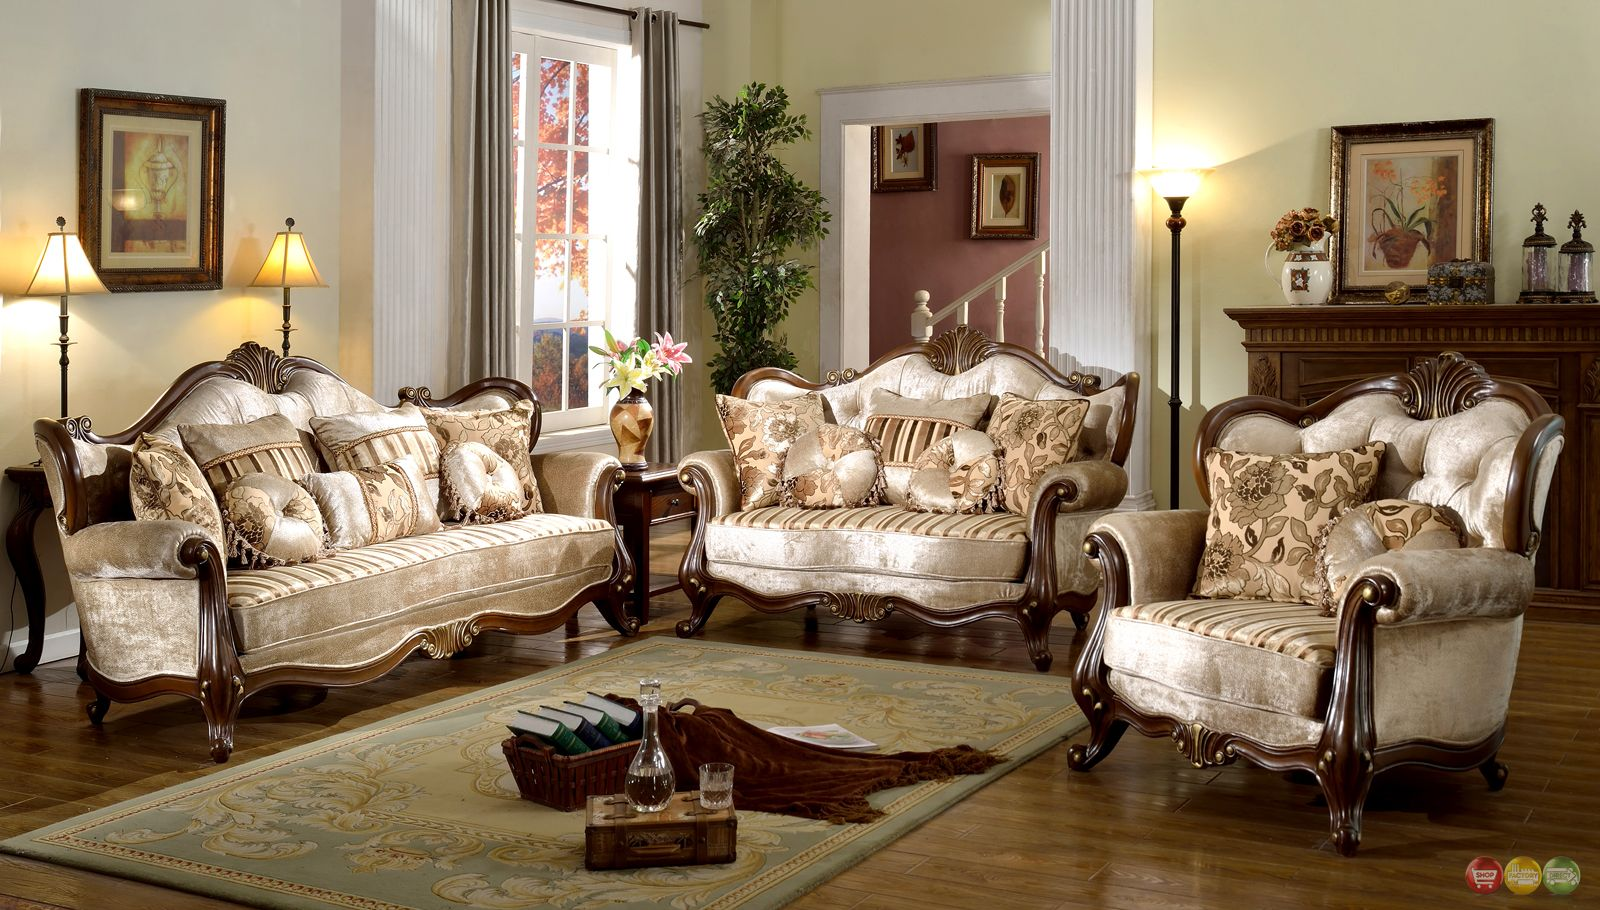 French Provincial Formal Antique Style Living Room Furniture Set Beige  Chenille   shopfactorydirect com. French Provincial Formal Antique Style Living Room Furniture Set